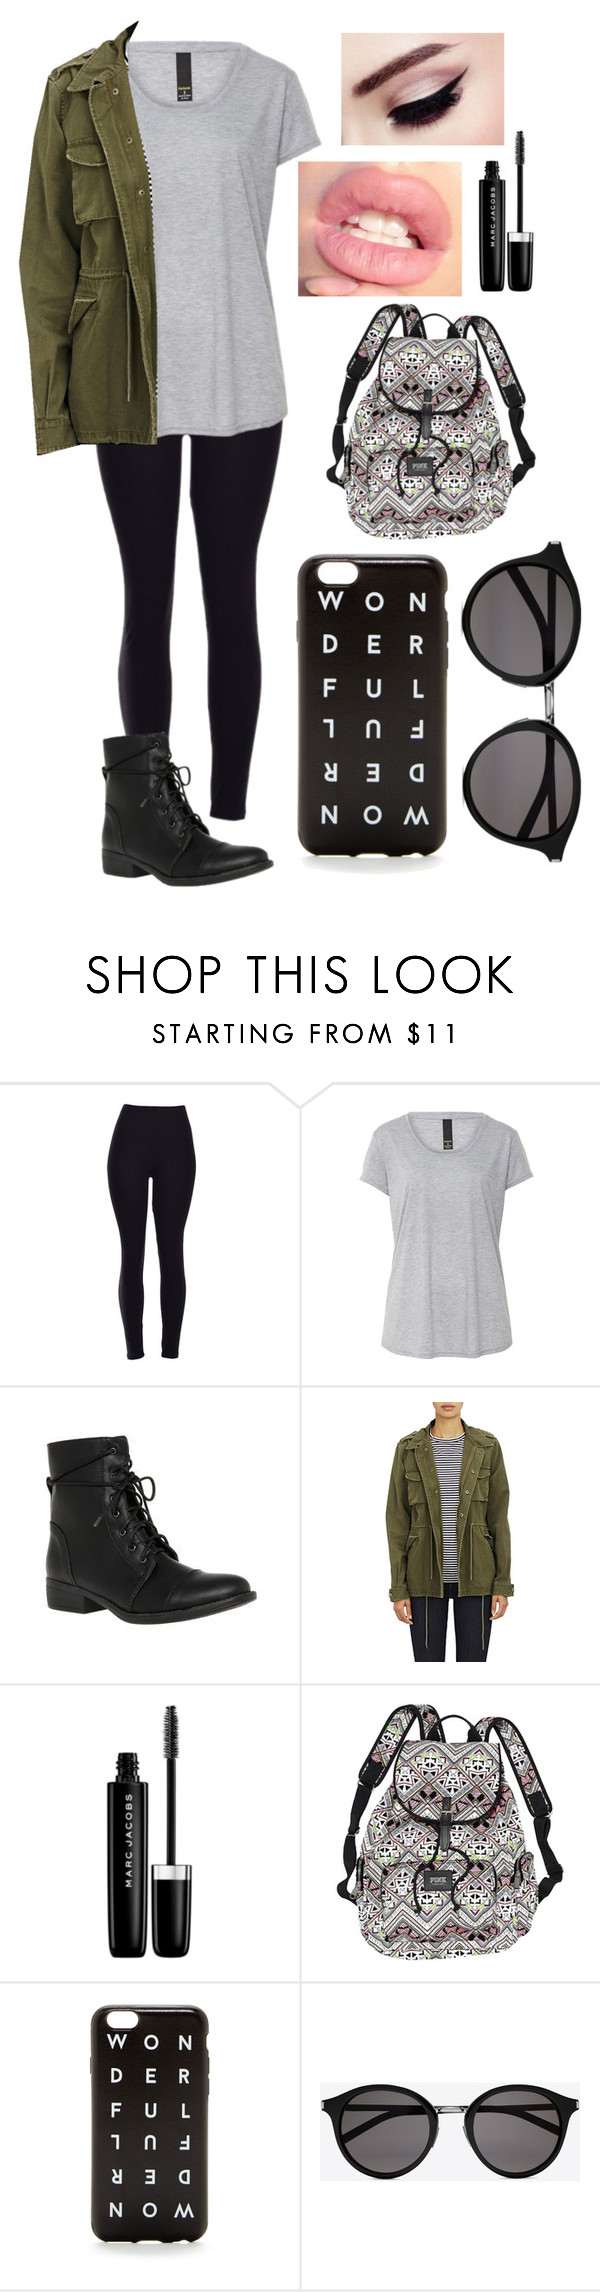 """Go To Outfit"" by madim13 ❤ liked on Polyvore featuring Barneys New York, Marc Jacobs, Victoria's Secret, J.Crew and Yves Saint Laurent"